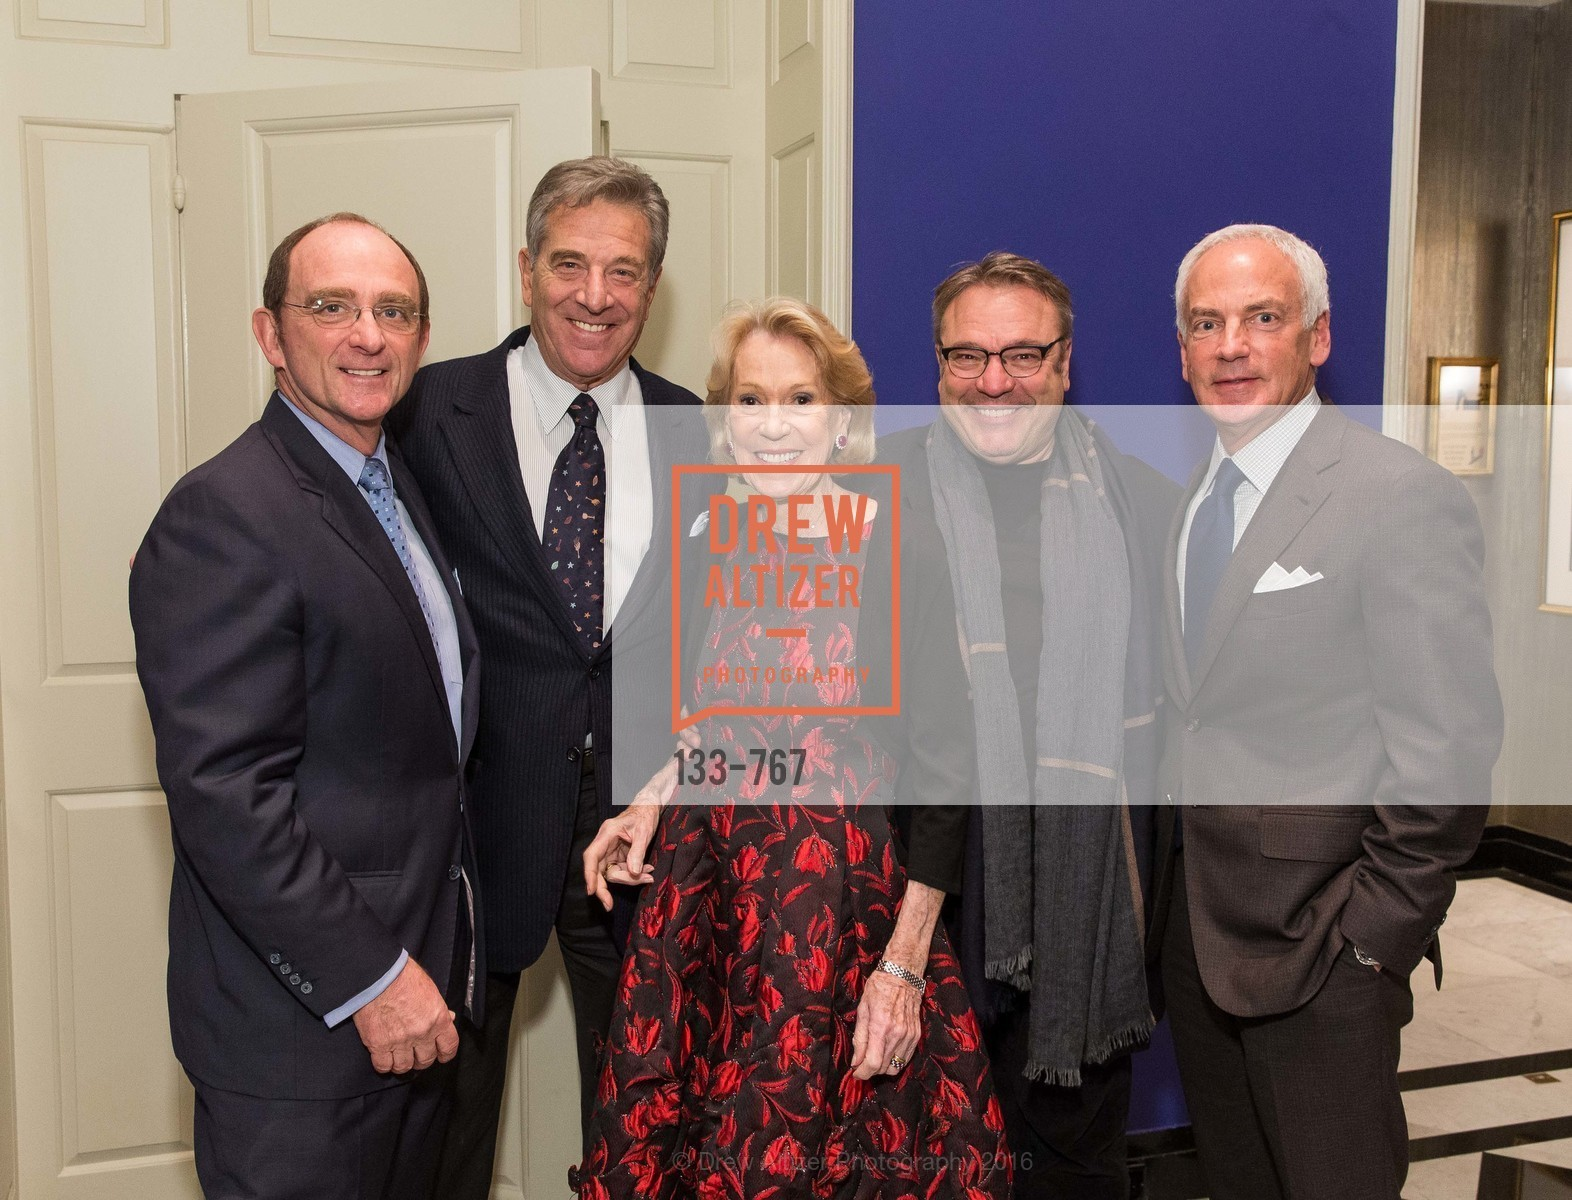 Tom Klein, Paul Pelosi, Charlotte Shultz, Stanlee Gatti, Jeff Farber, A Special Reception with Tony Bennett, The Fairmont, San Francisco, The Penthouse Suite, January 26th, 2016